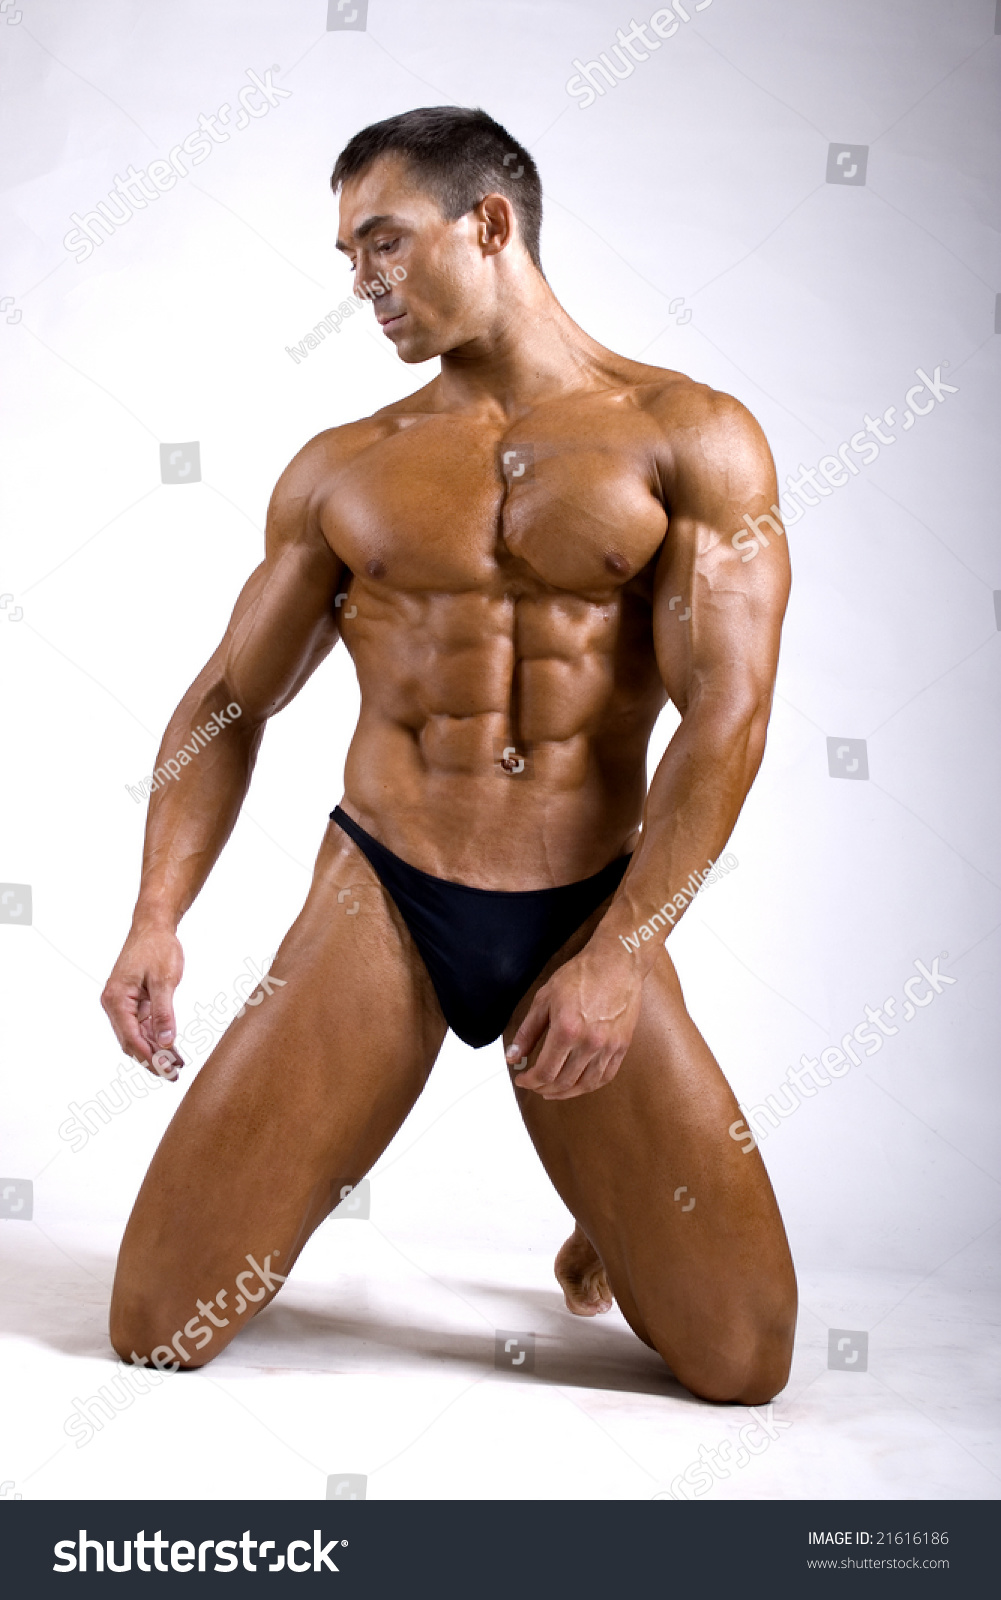 naked Big man muscular